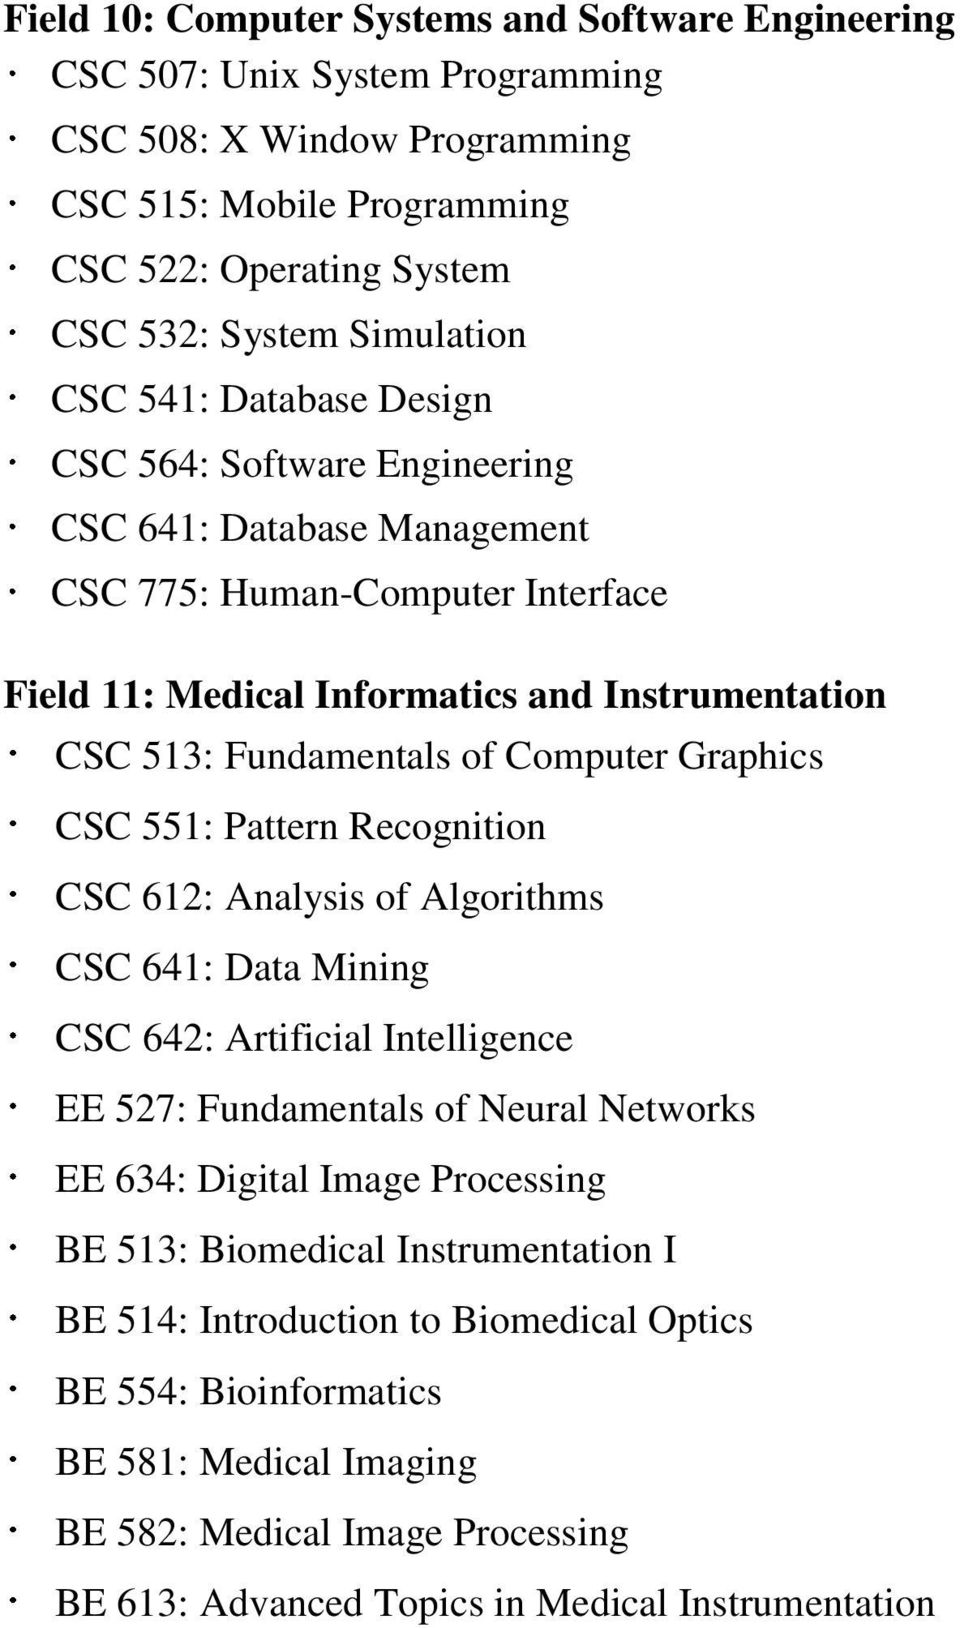 Informatics and Instrumentation CSC 513: Fundamentals of Computer Graphics CSC 612: Analysis of Algorithms EE 527: Fundamentals of Neural Networks BE 513: Biomedical